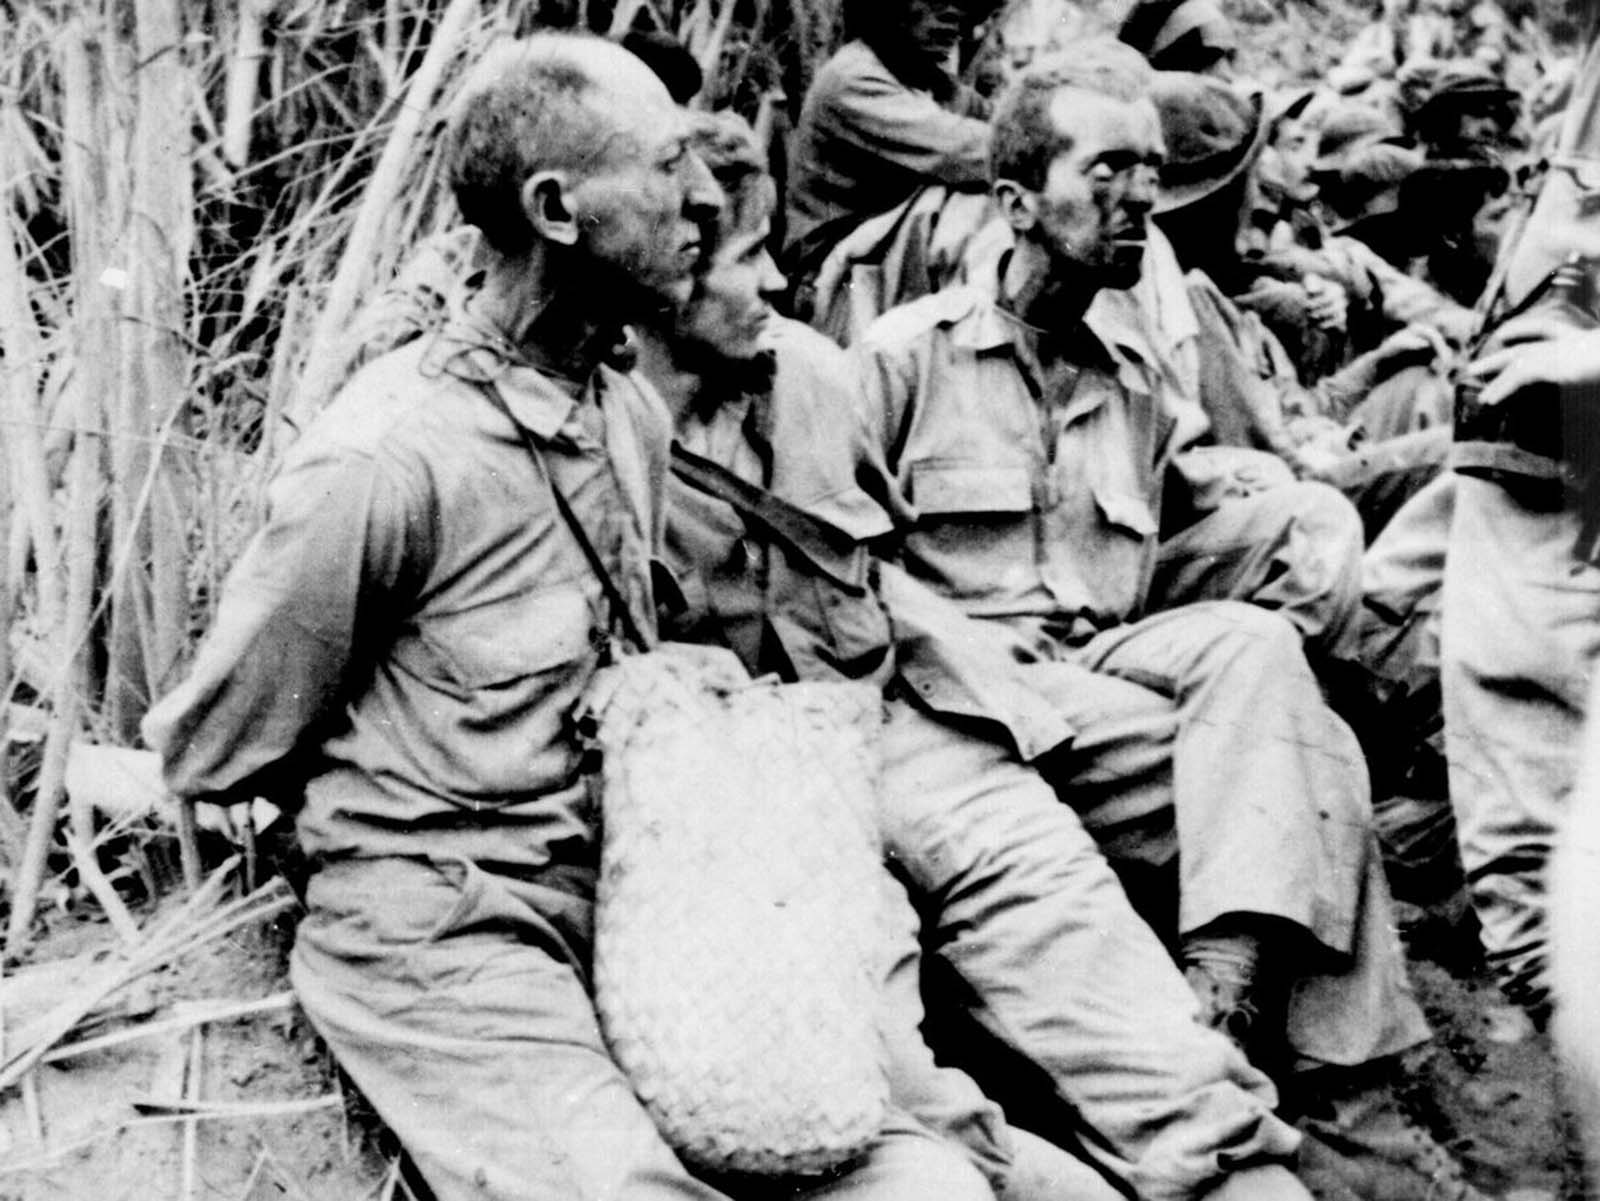 These prisoners were photographed along the Bataan Death March in April of 1942. They have their hands tied behind their backs. The estimates of the number of deaths that occurred along the march vary quite a bit, but some 5,000 to 10,000 Filipino and 600 to 650 American prisoners of war died before they could reach Camp O'Donnell. Thousands more would die in poor conditions at the camp in the following weeks.